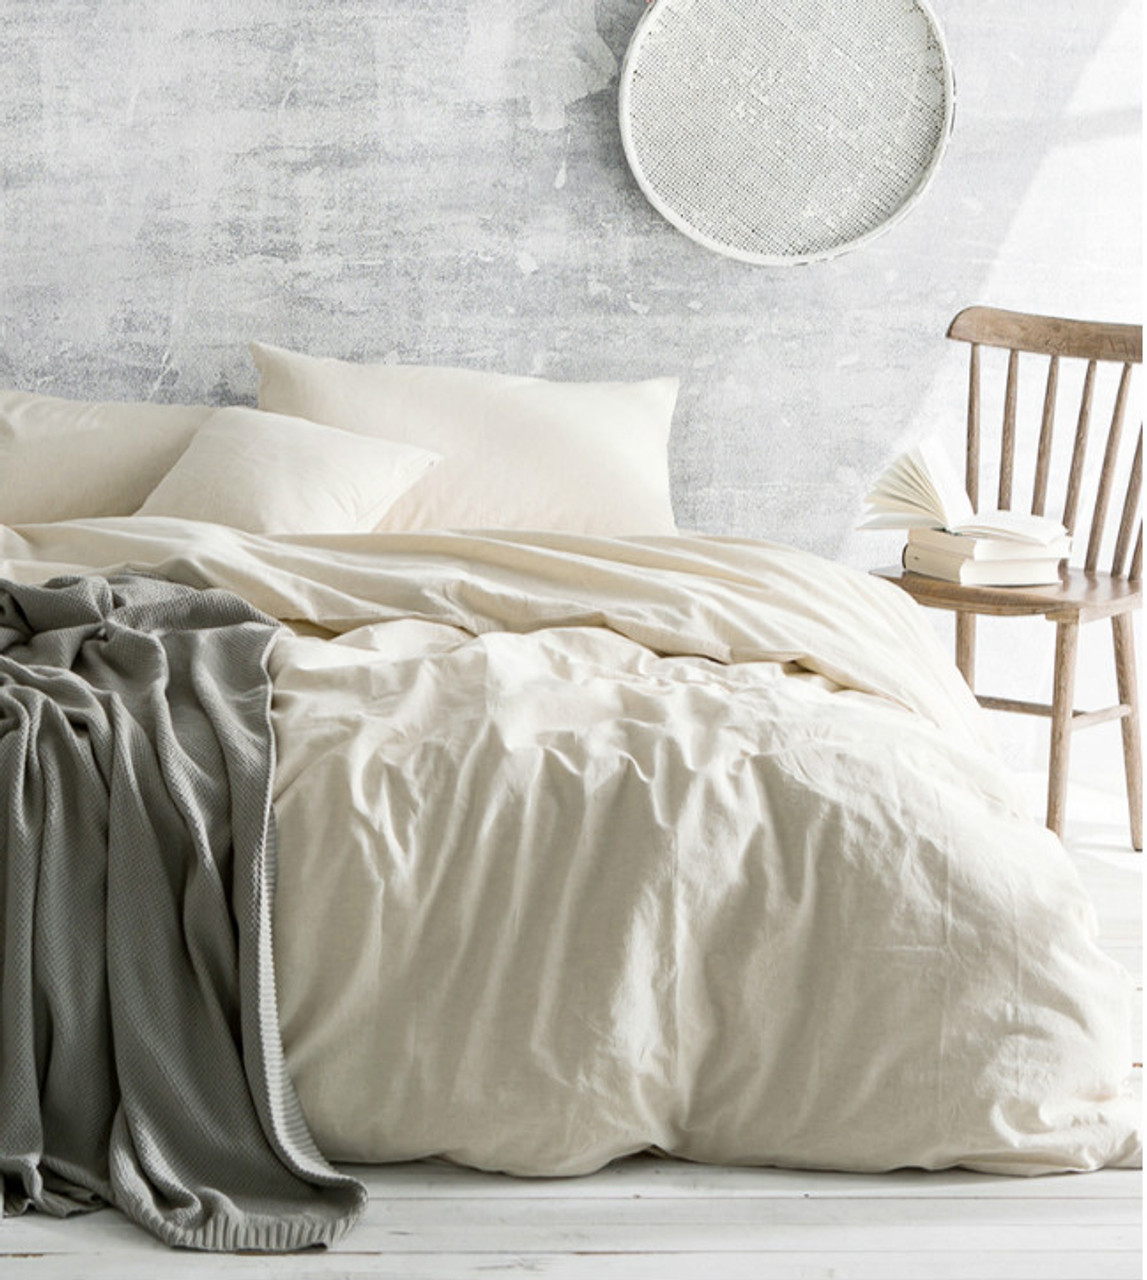 Linen Duvet Cover Sets In Cream Ivory Custom Size Queen